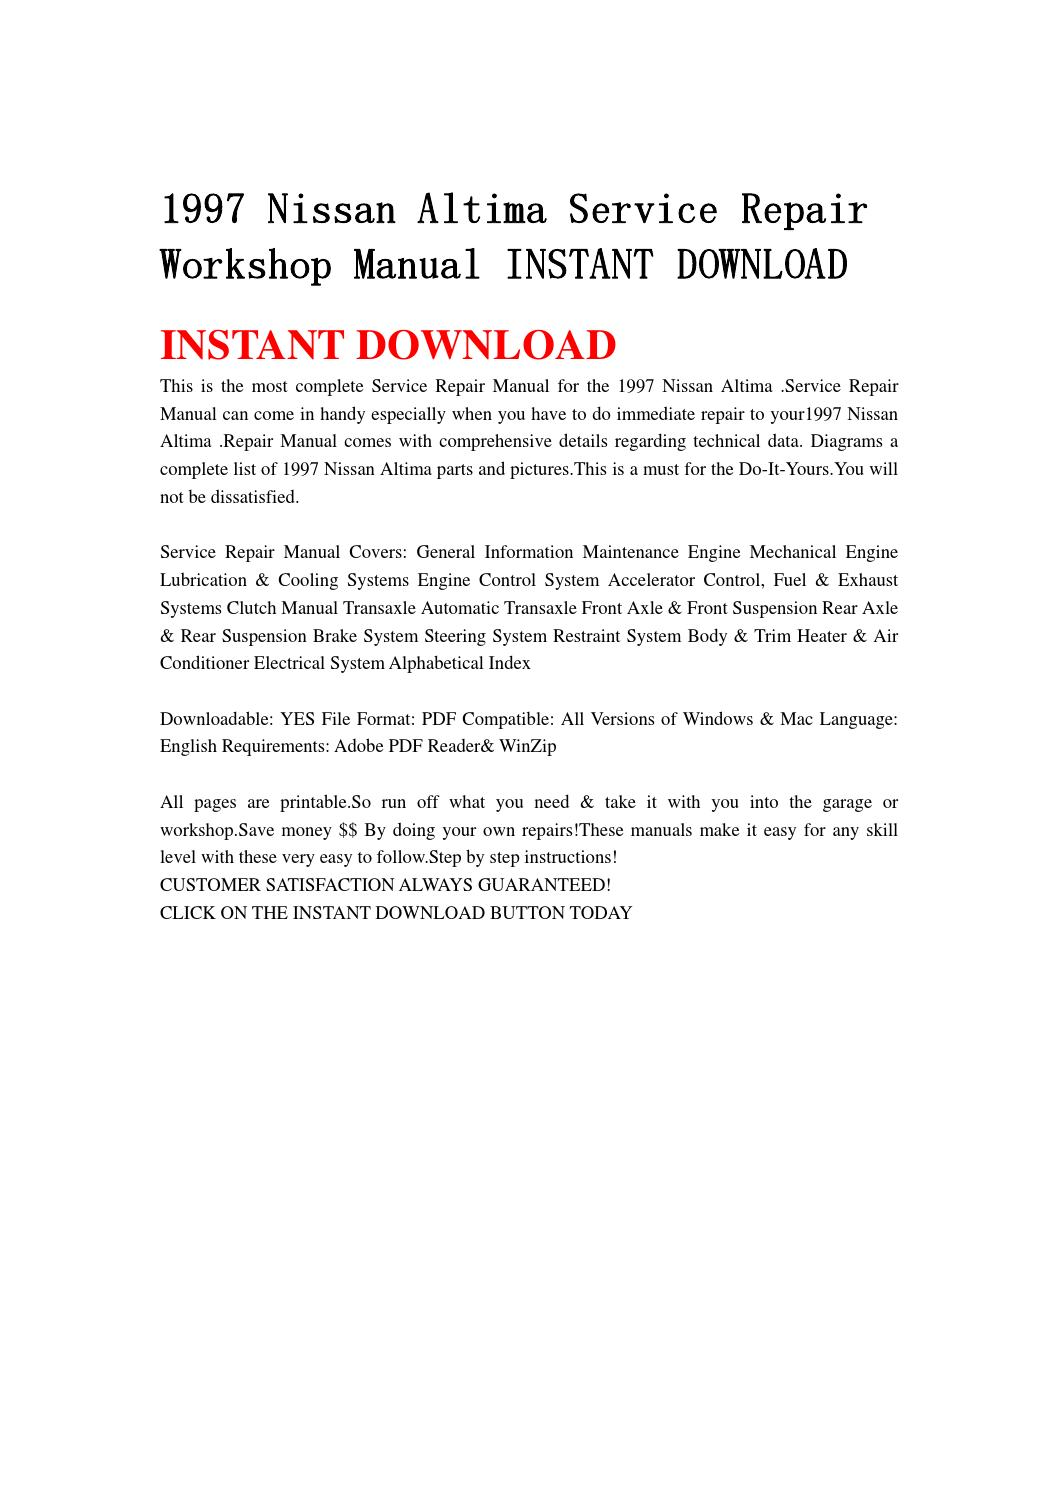 1997 nissan altima service repair workshop manual instant download by  hgsehn - issuu